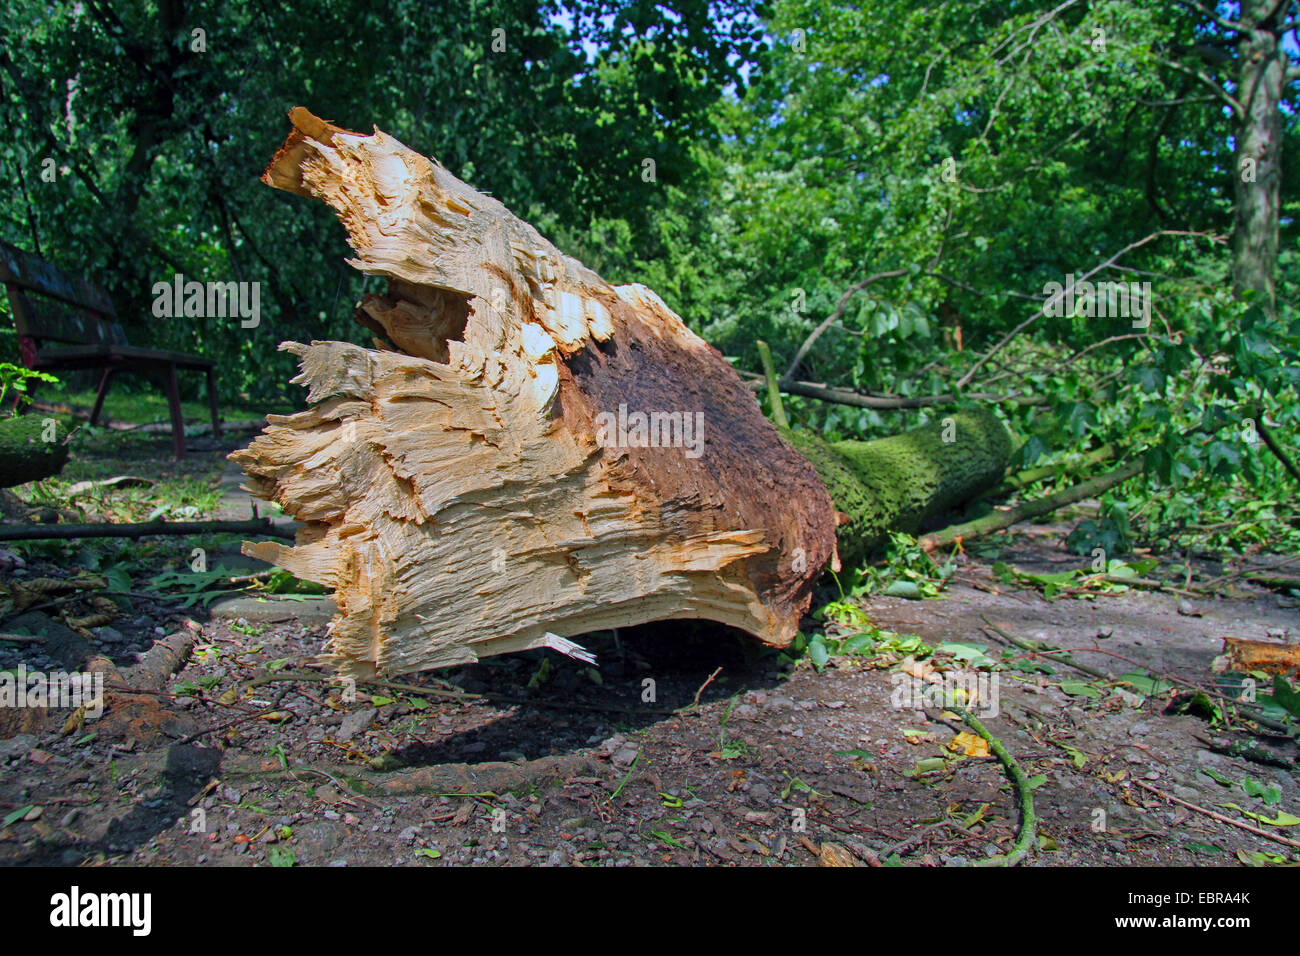 fallen branch after front Ela at 2014-06-09, Germany, North Rhine-Westphalia, Ruhr Area, Essen - Stock Image